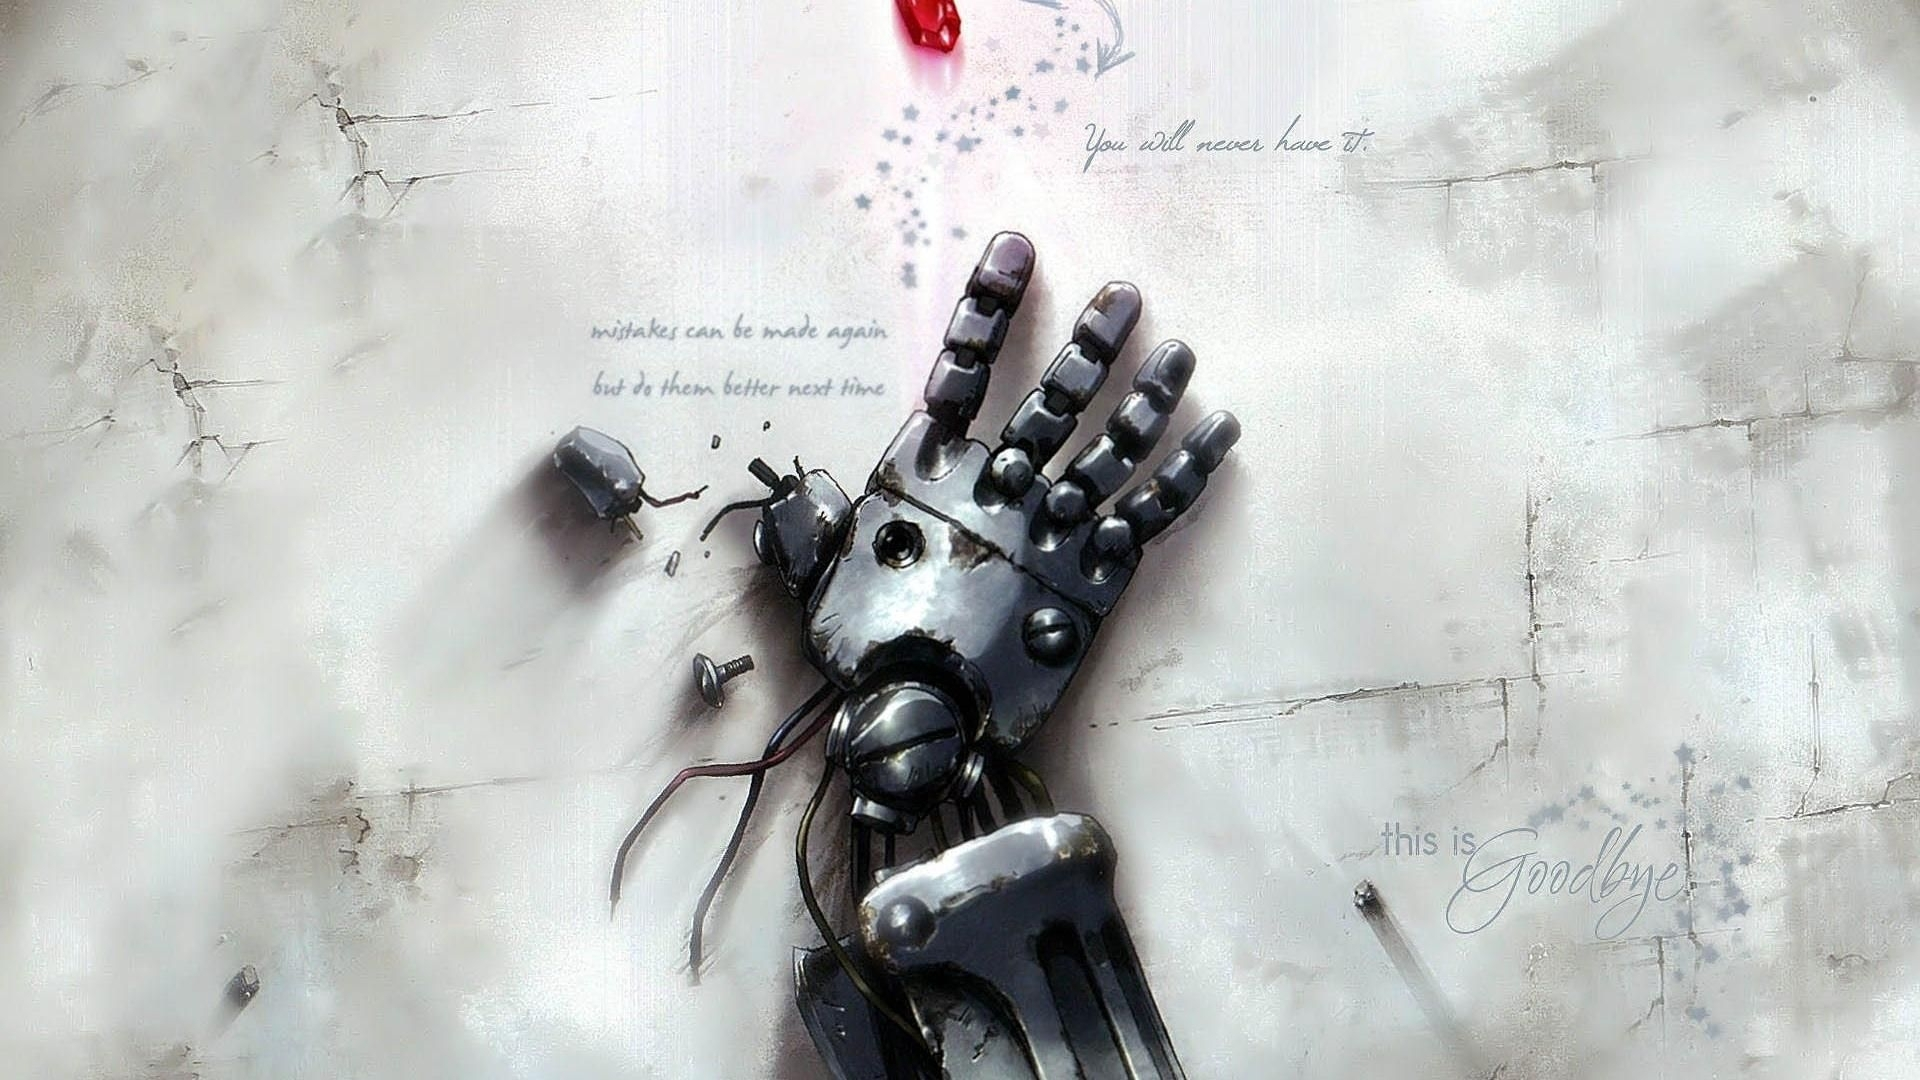 nice fullmetal alchemist wallpaper hd | other wallpapers | pinterest